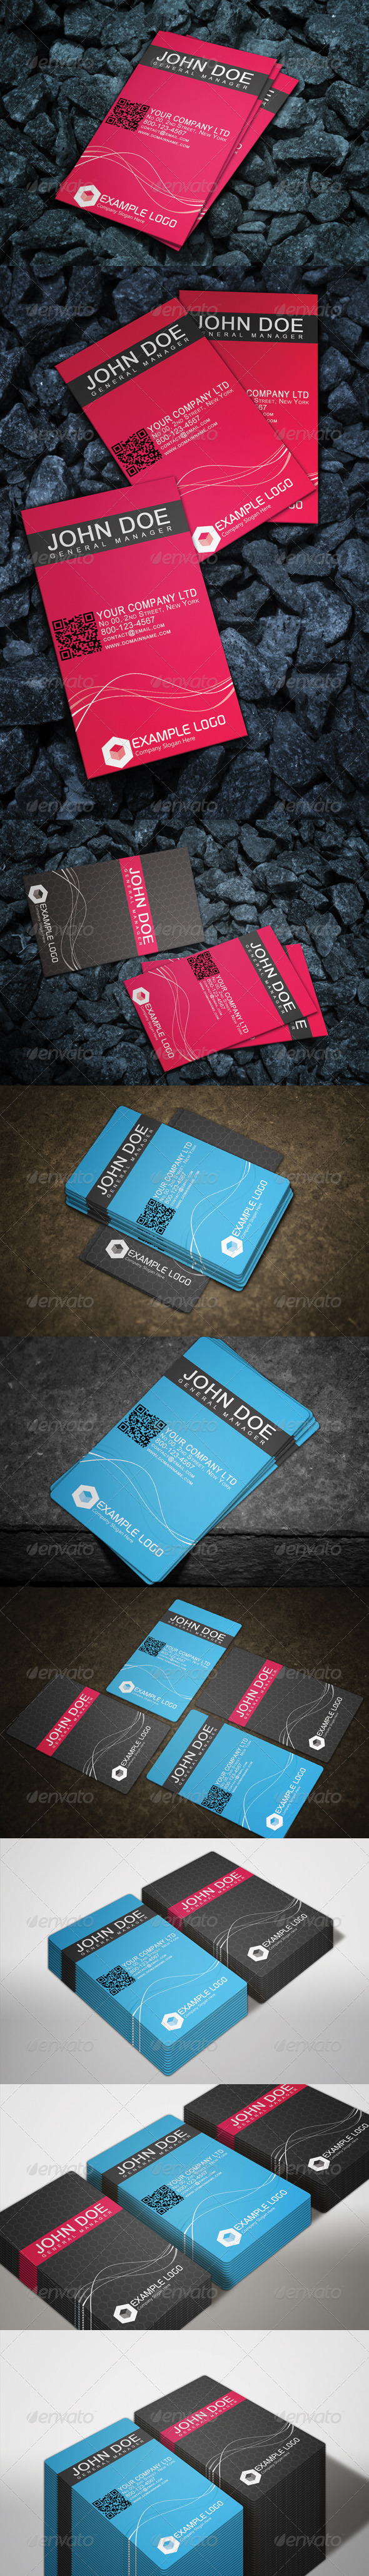 Photorealistic Business Card Mock-Up Bundle 1 - Business Cards Print